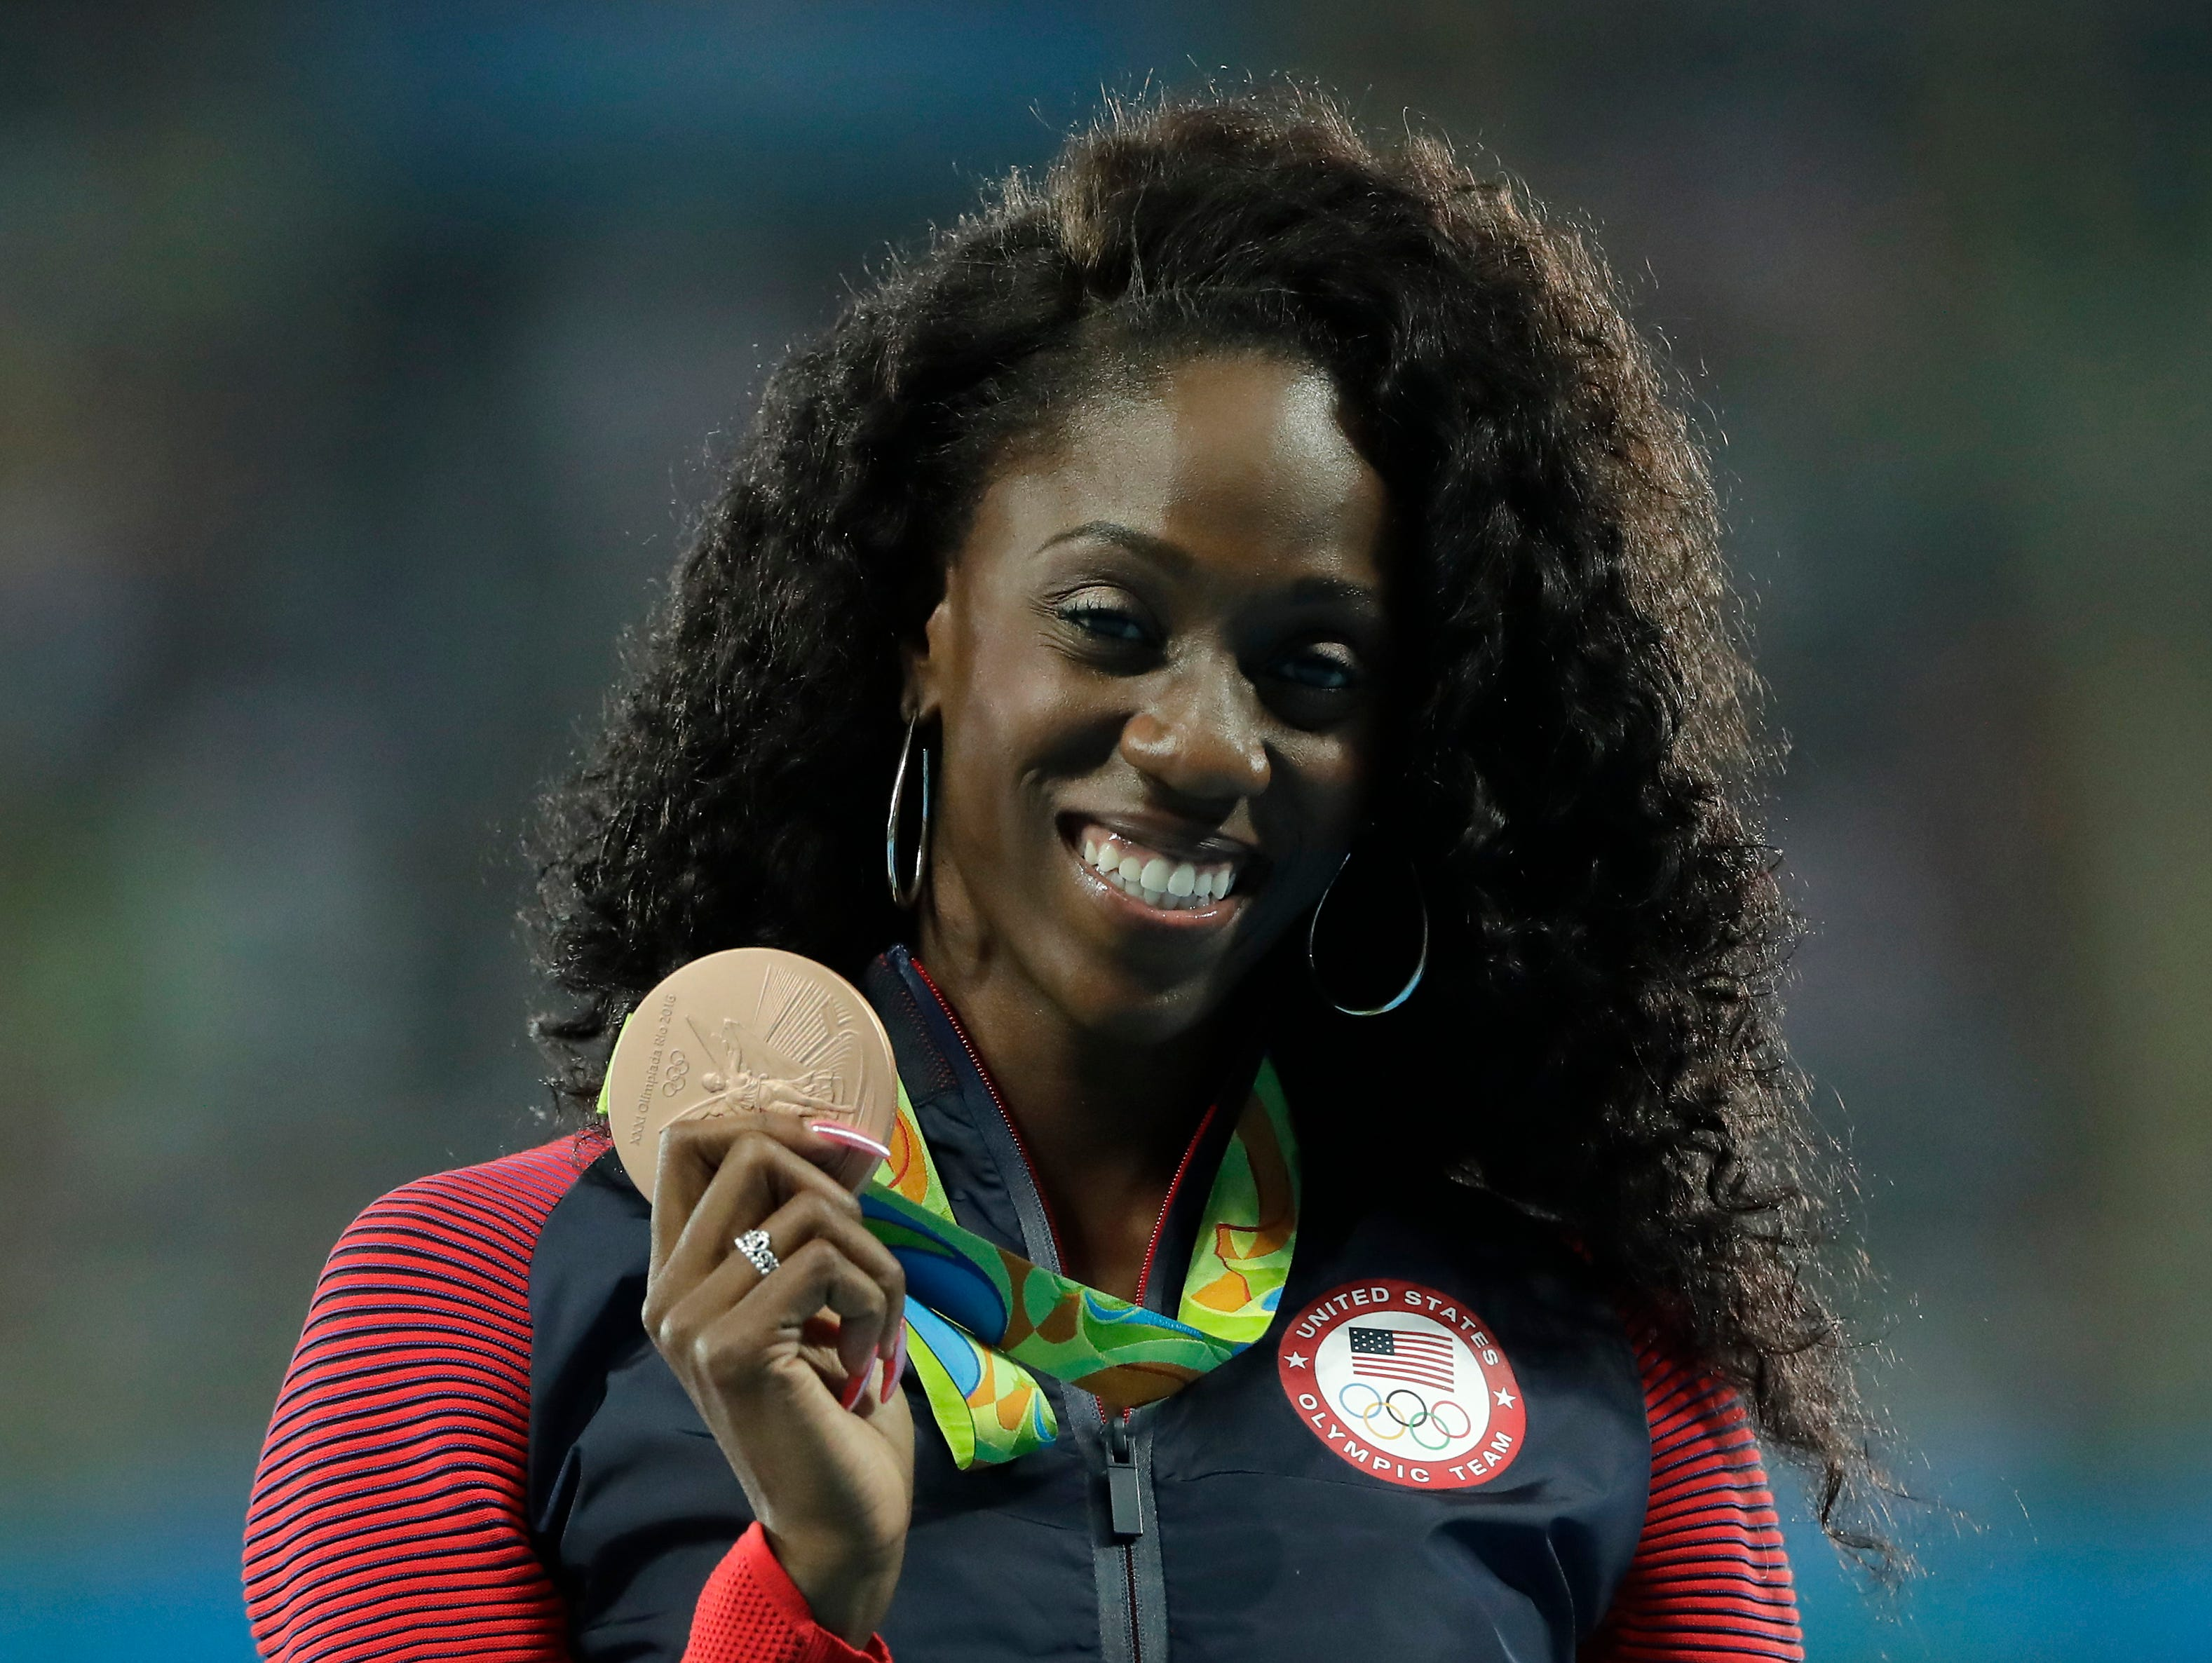 United States' Ashley Spencer shows off her bronze medal during the medal ceremony for the women's 400-meter hurdles race during the athletics competitions of the 2016 Summer Olympics at the Olympic stadium in Rio de Janeiro, Brazil.